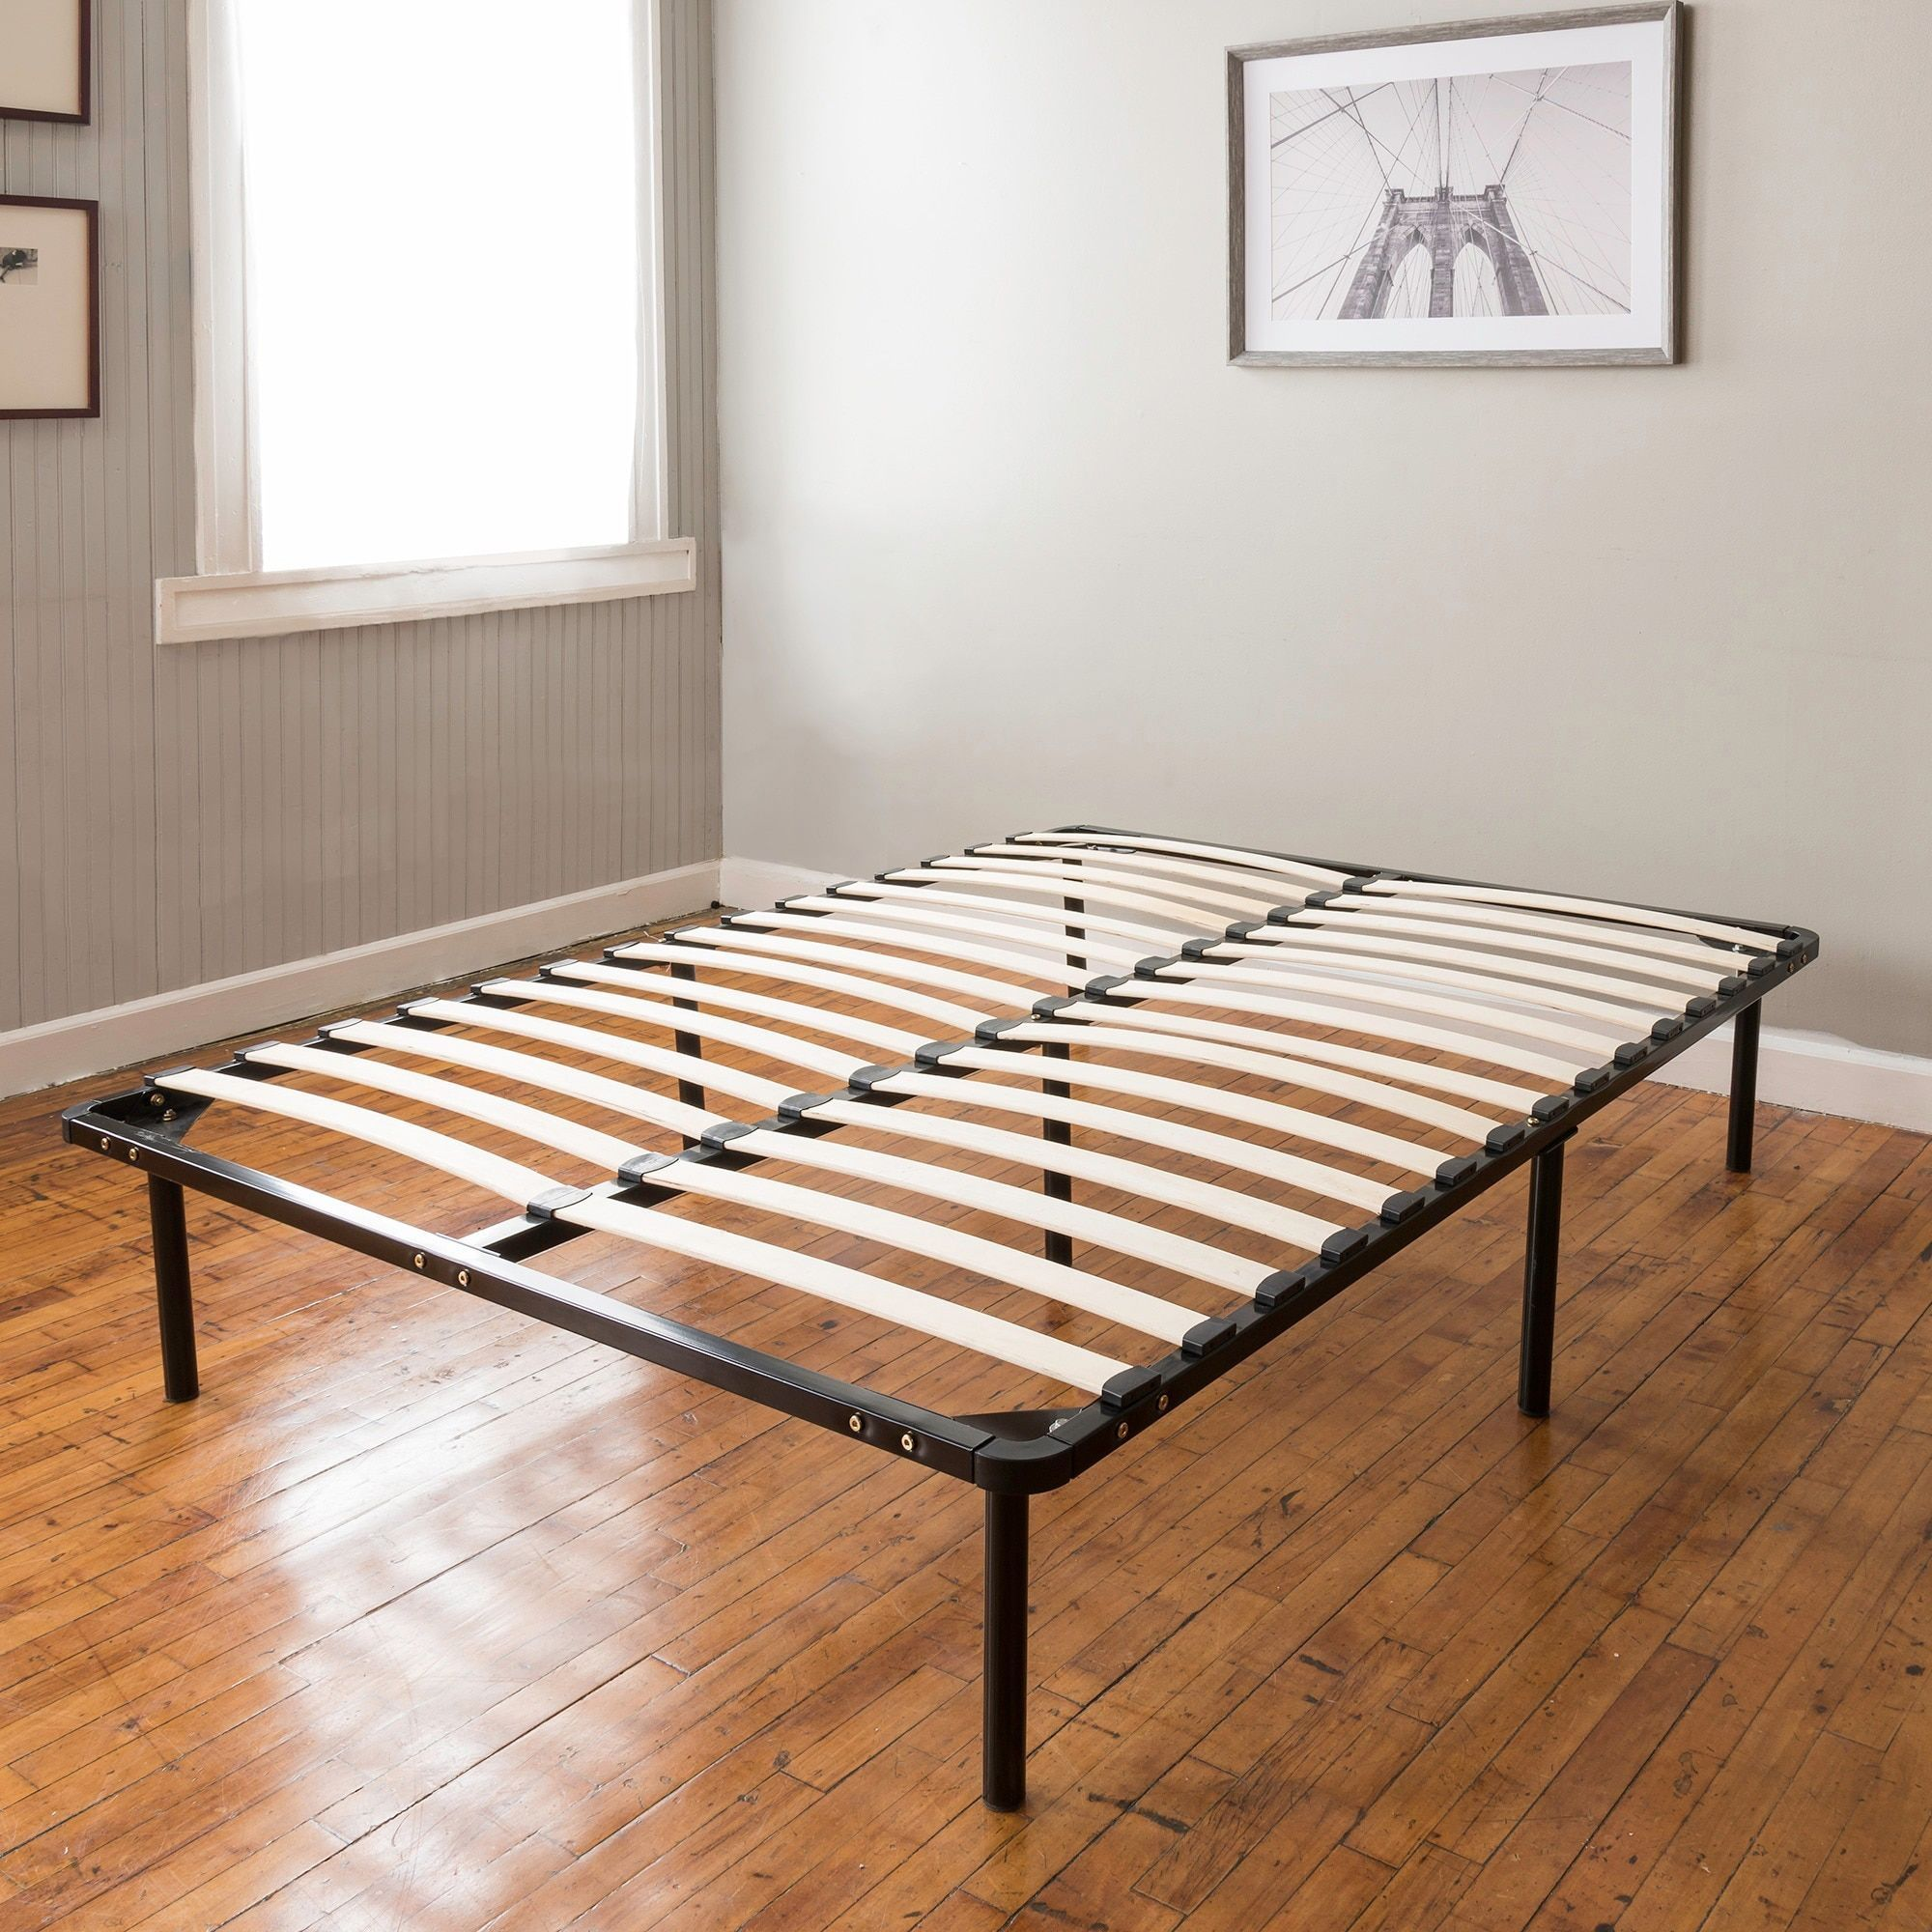 postureloft wood slat and metal platform full size bed frame and mattress foundation - Wood Full Size Bed Frame